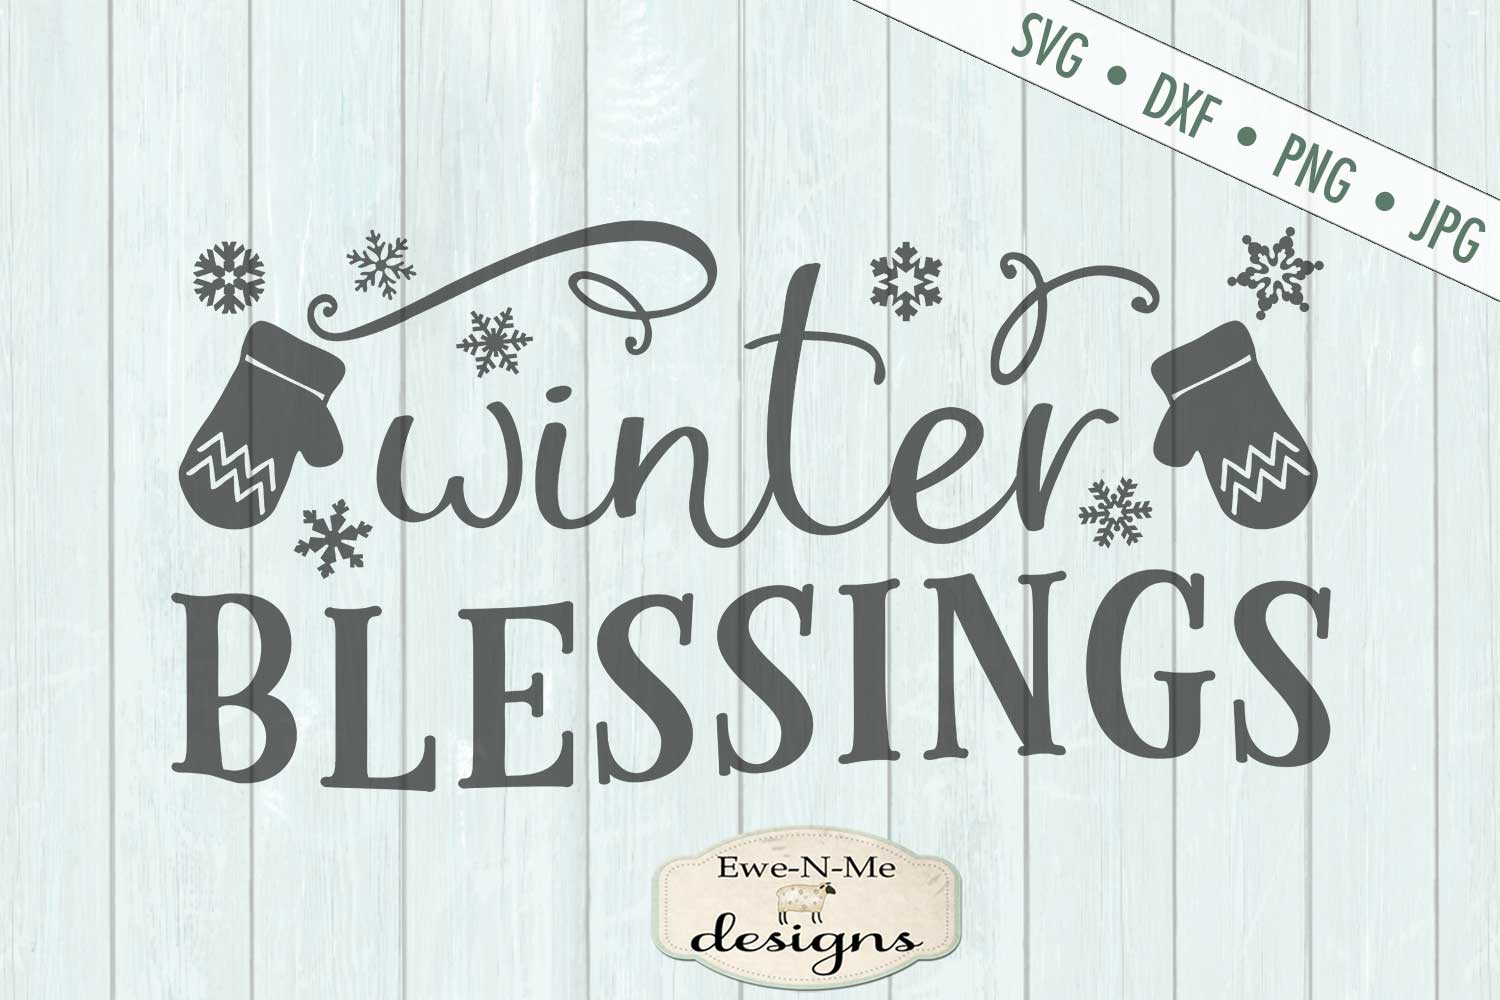 Winter Blessings - Mittens - SVG DXF Files example image 2